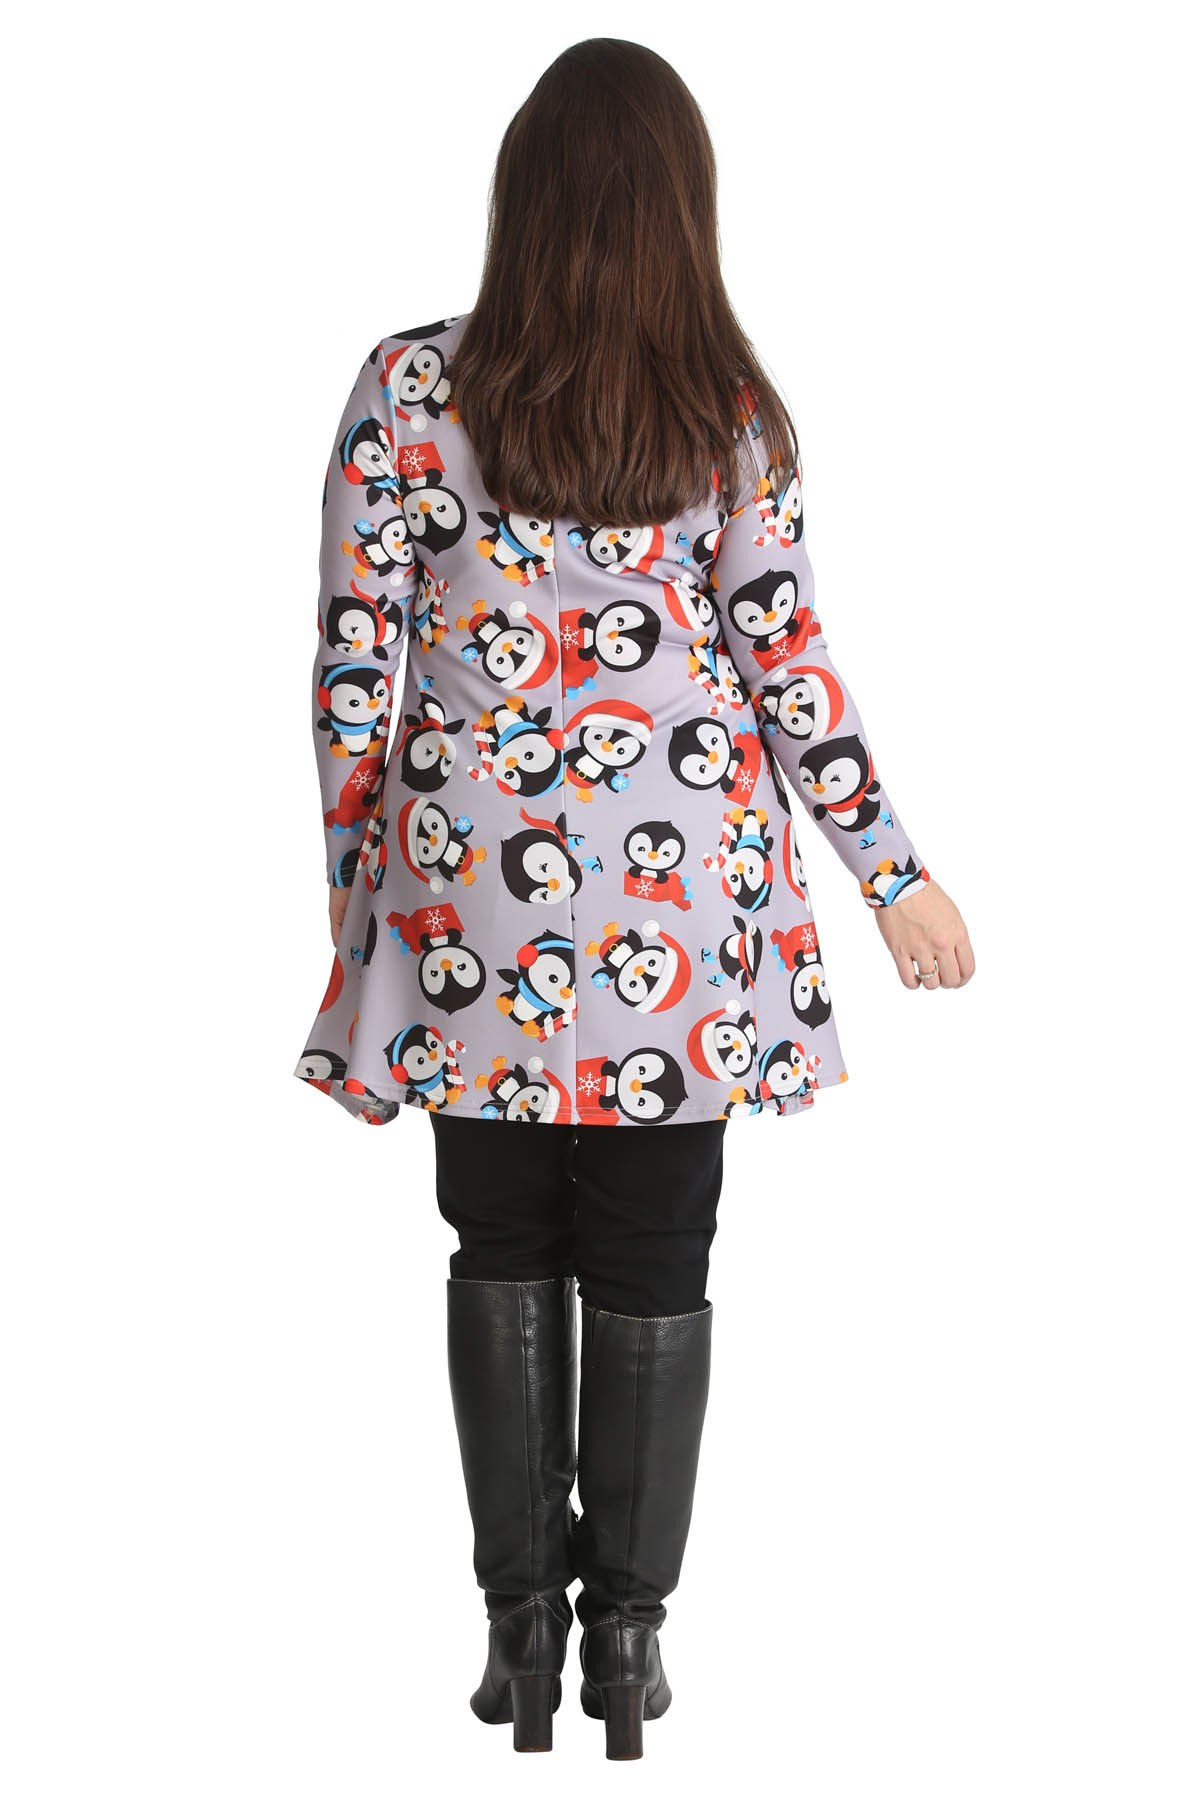 Christmas Swing Dress  New La s Top Women Penguin Christmas Swing Dress Plus